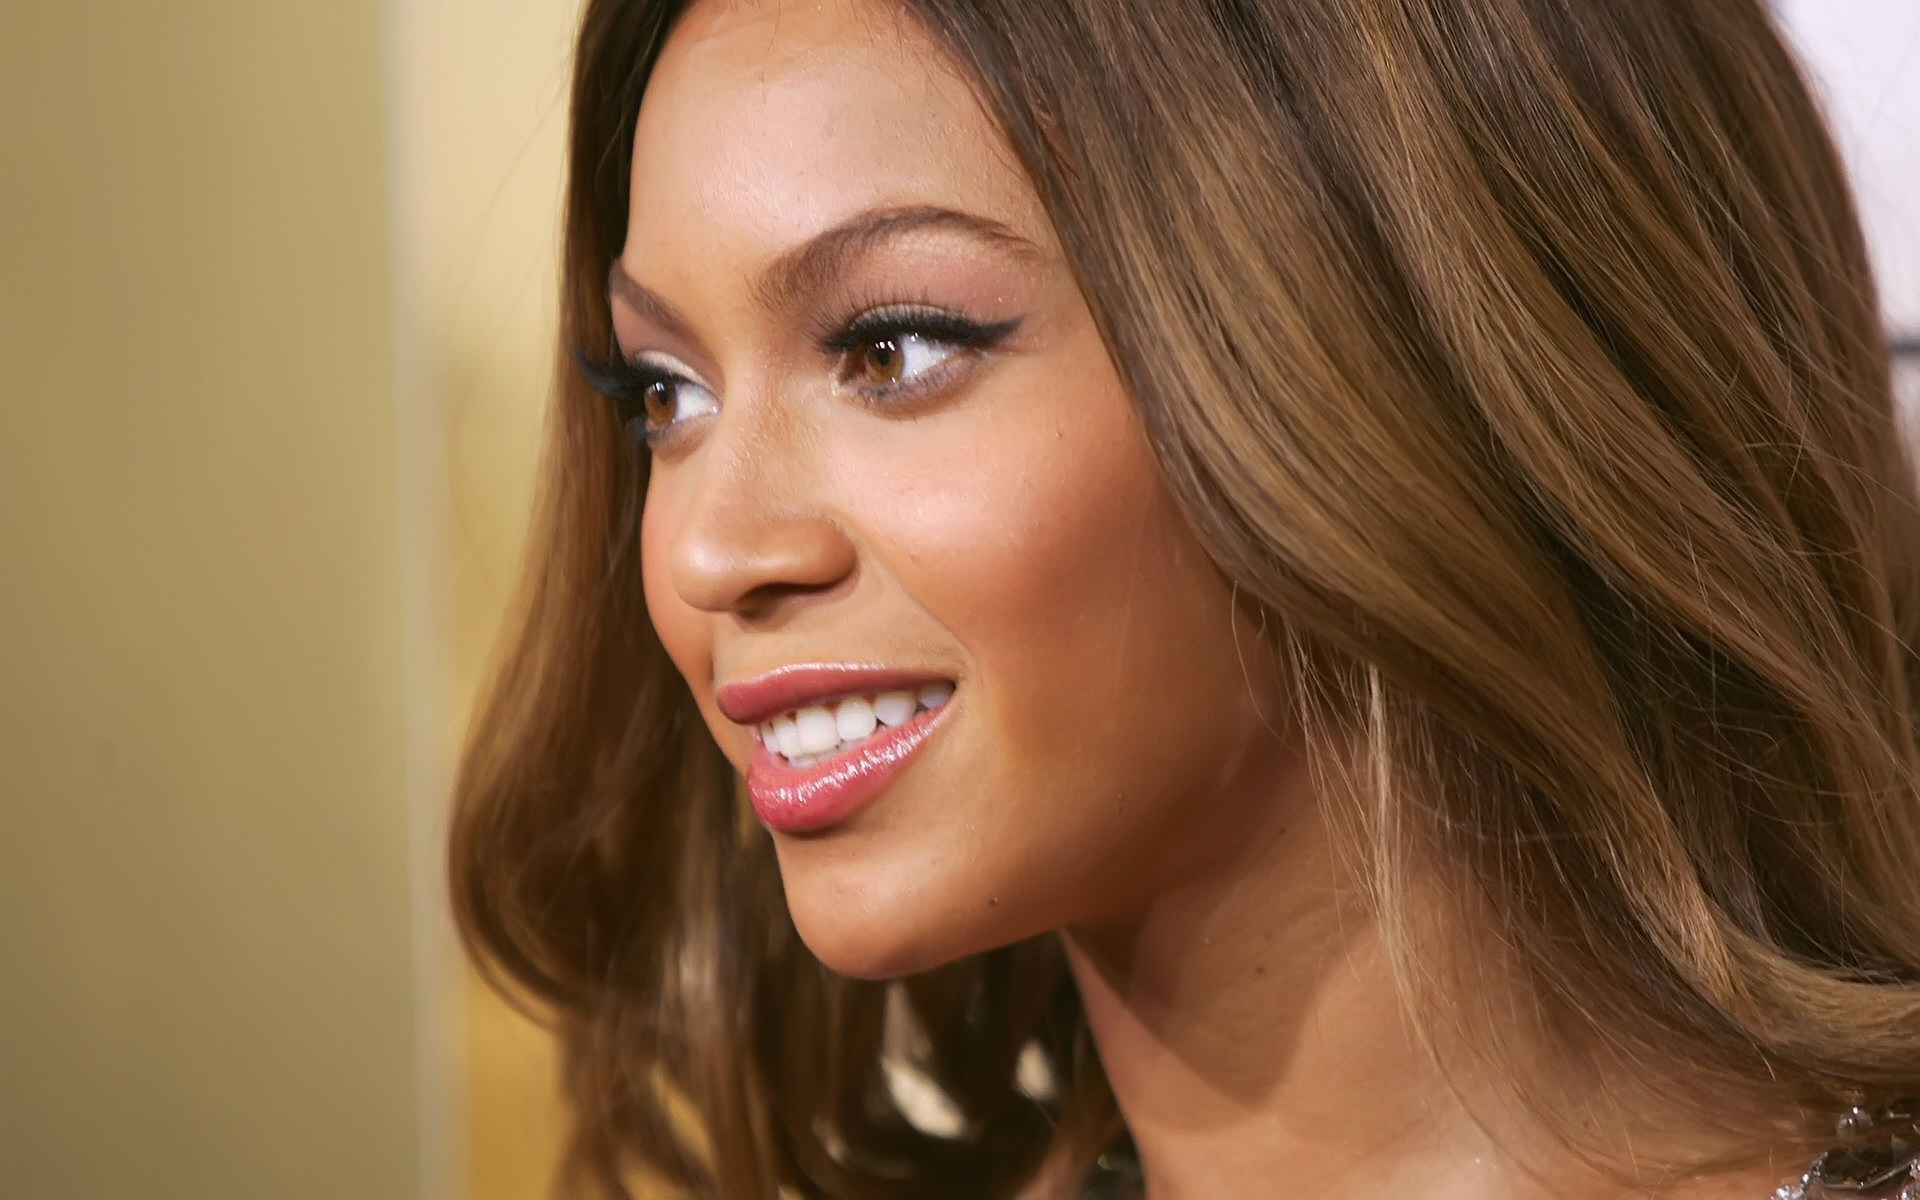 Beyonce Knowles beautiful for 1920 x 1200 widescreen resolution